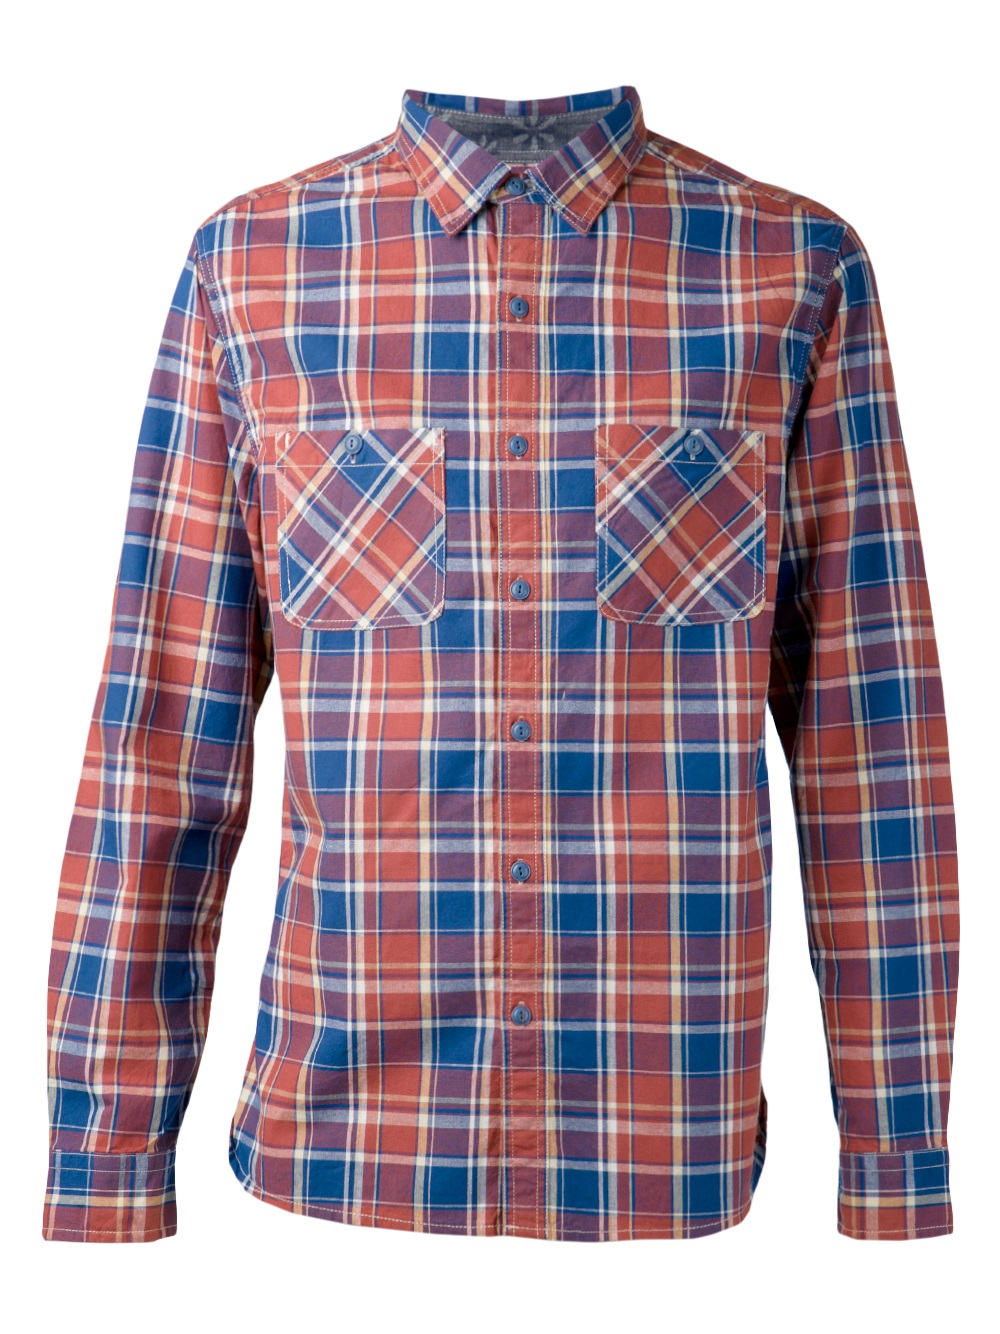 Alex mill 39 chore 39 plaid shirt in blue for men lyst for Blue and yellow plaid dress shirt